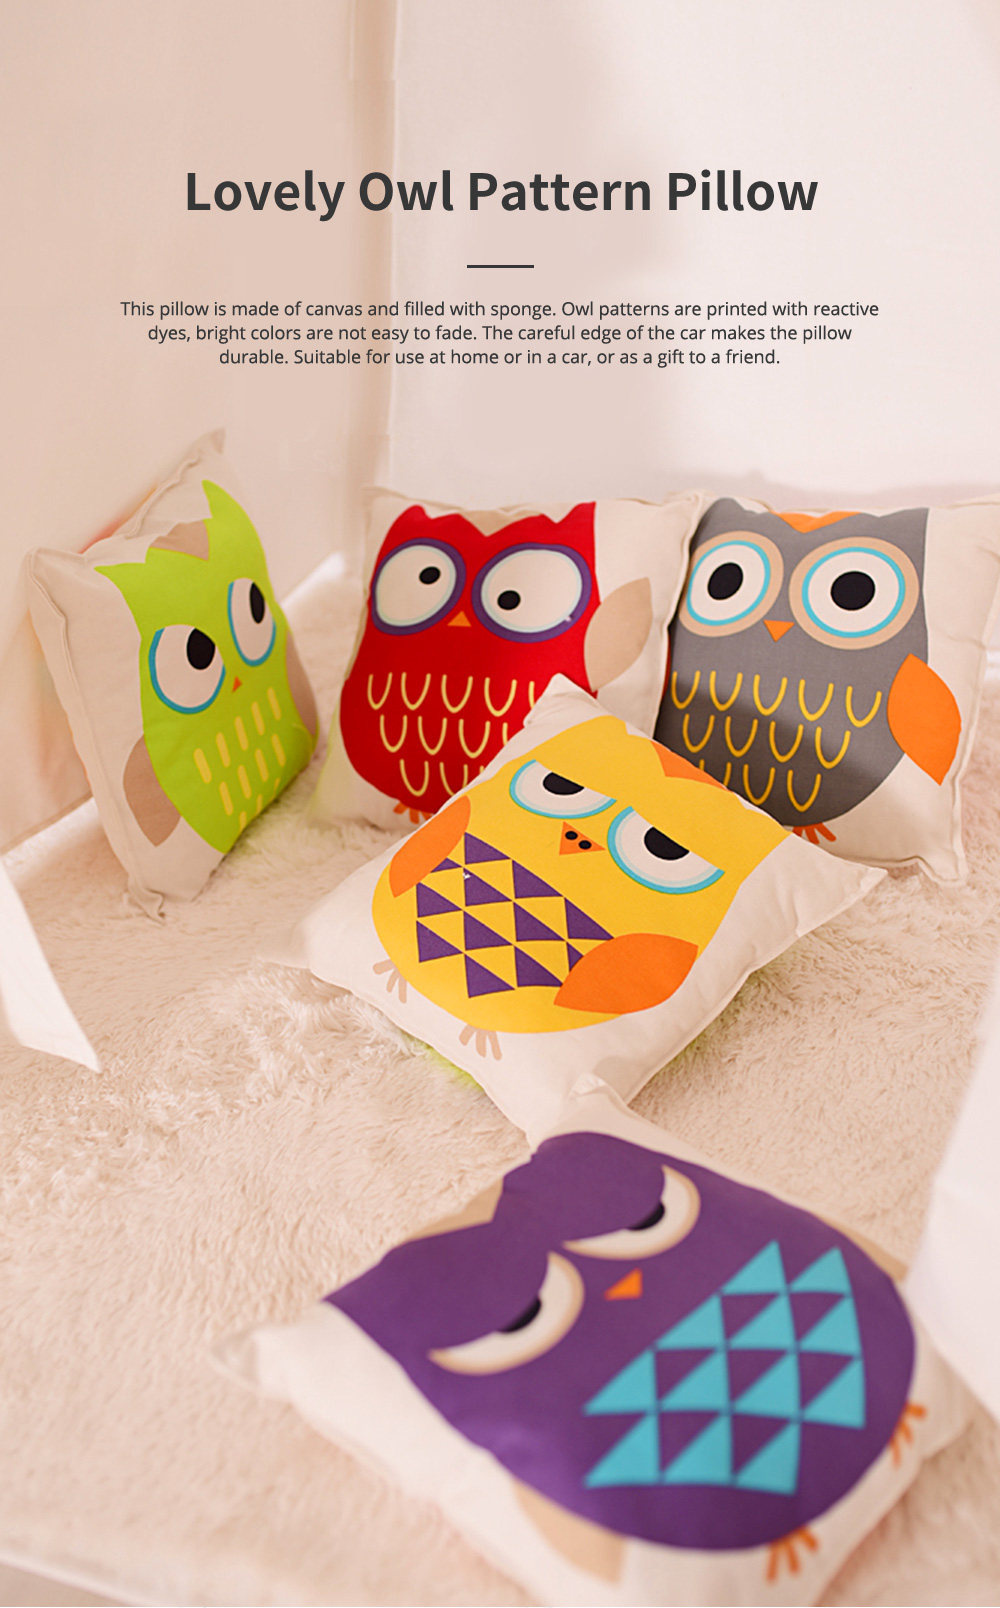 Lovely Owl Pattern Pillow for Car Home Sofa Cotton Pillow with Owl Image Cushion for Sofa 0